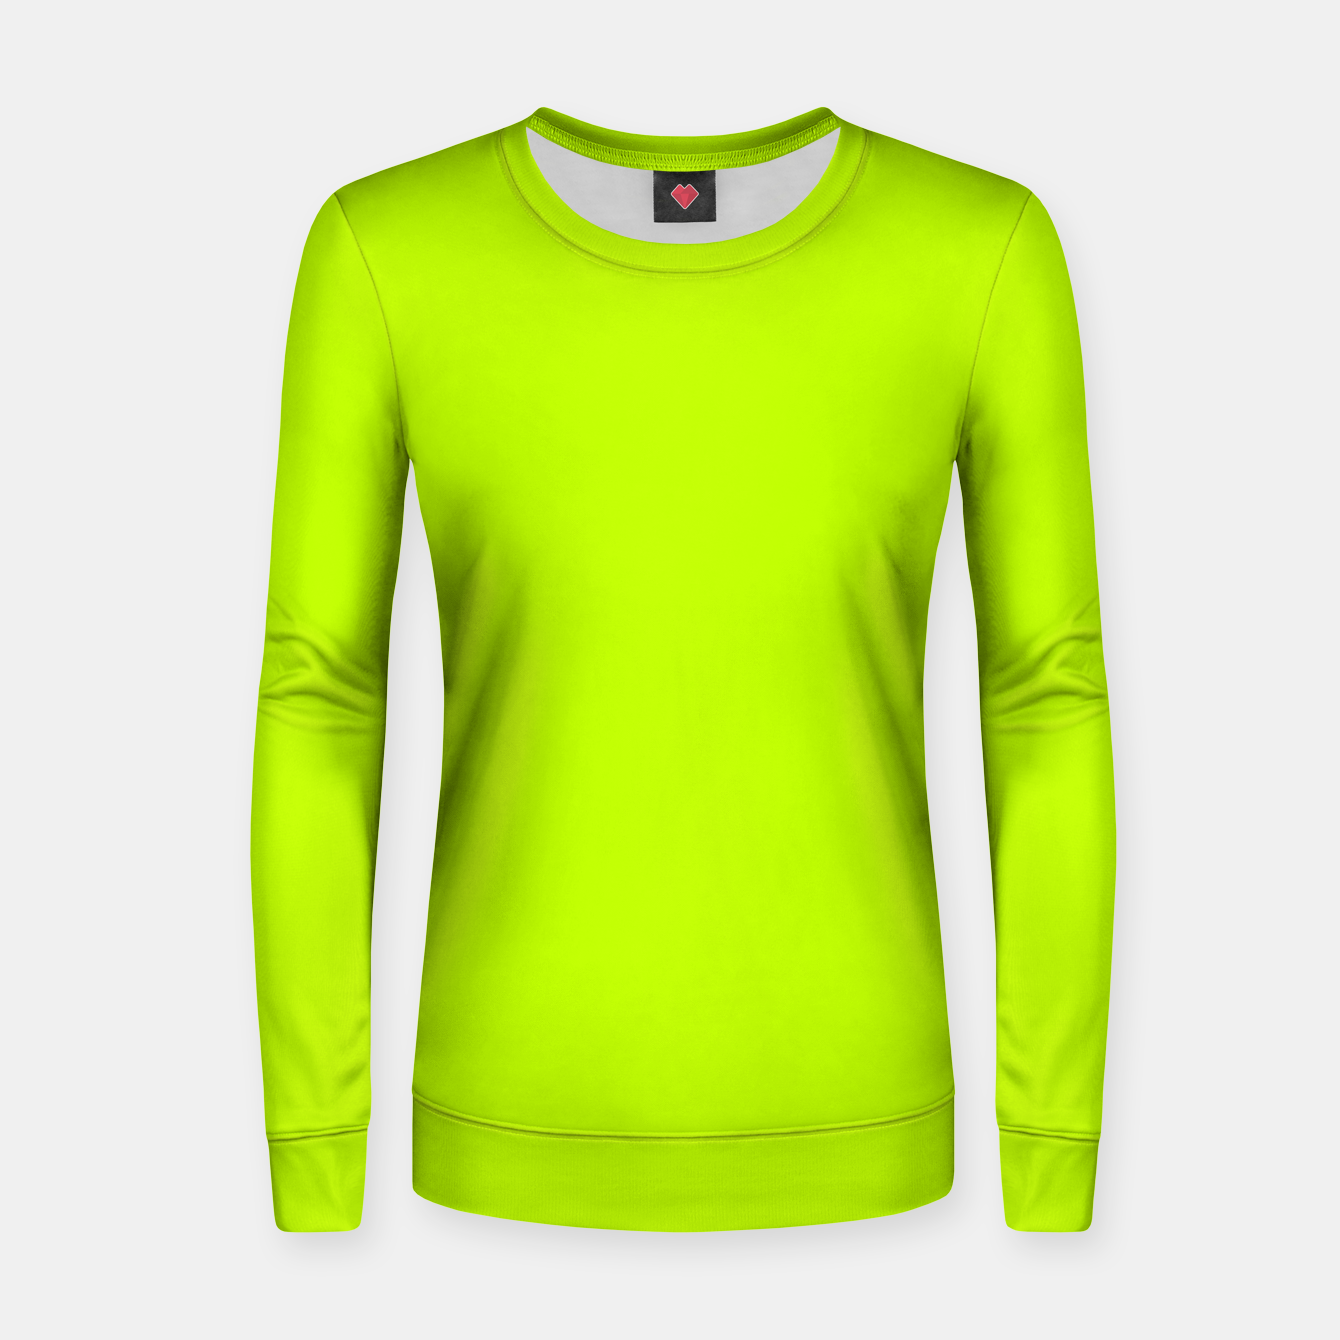 Imagen de Bitter Lime Neon Green Yellow Solid Color Women sweater - Live Heroes